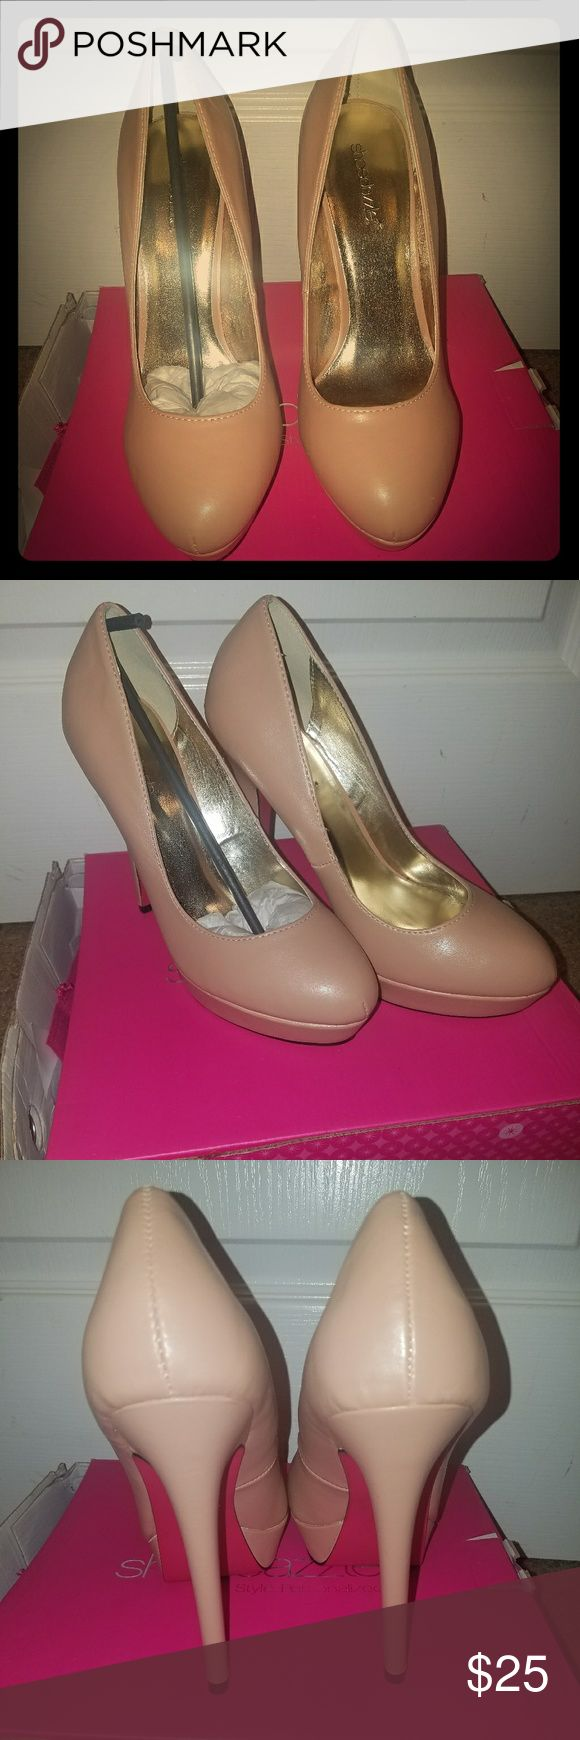 New Shoe Dazzle Nude Pink Crystal Heels Never worn. Nude pink. Heel height 4 inches platform 1 inch. Kept in box. Has dustbag. Smoke free home. Shoe Dazzle Shoes Heels